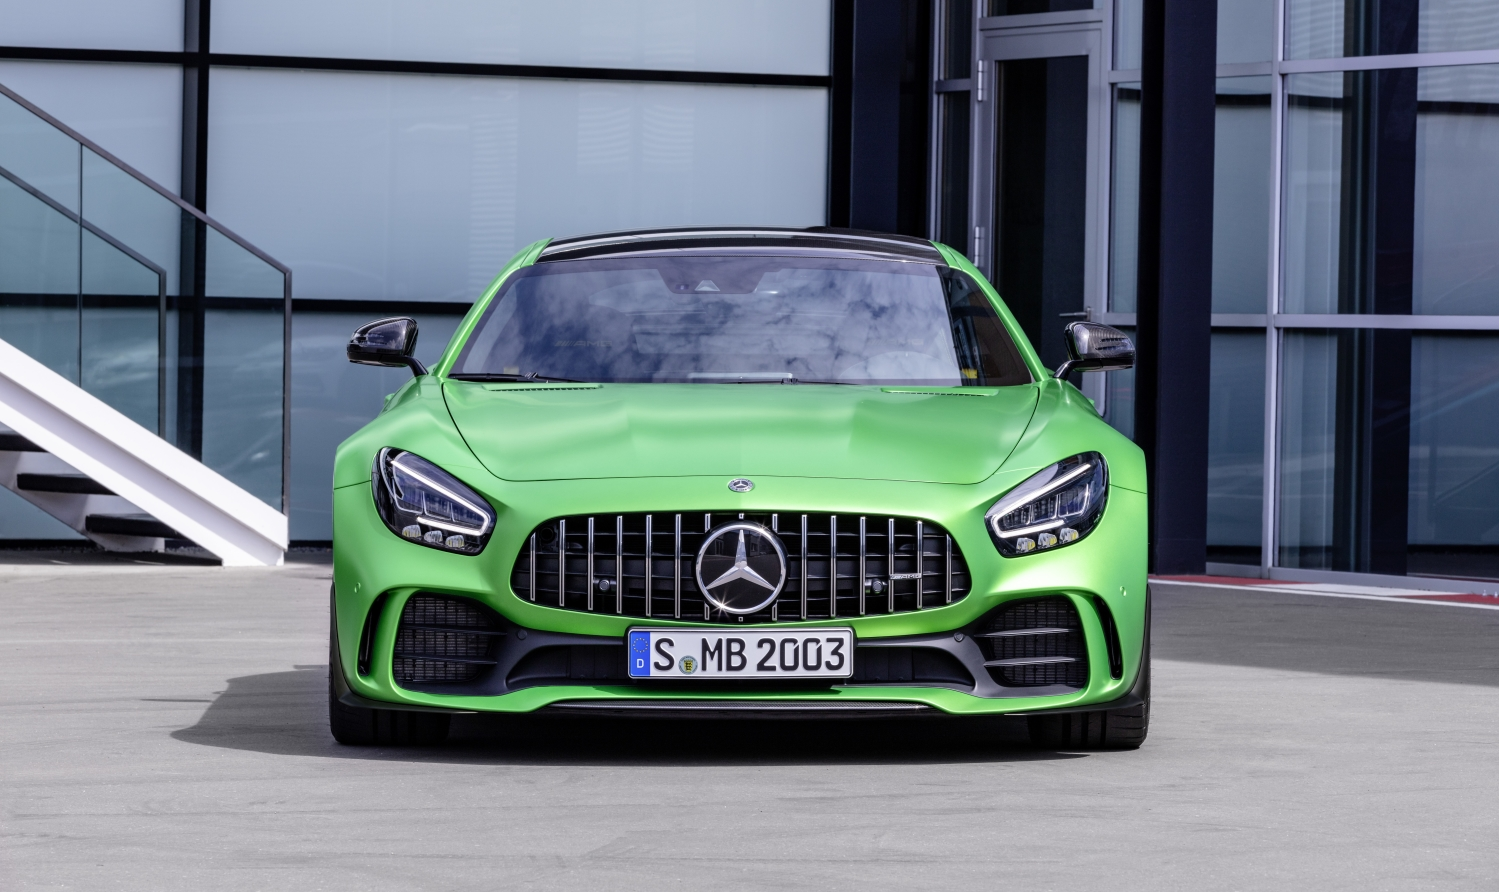 Mercedes is partnering with Microsoft to handle its data